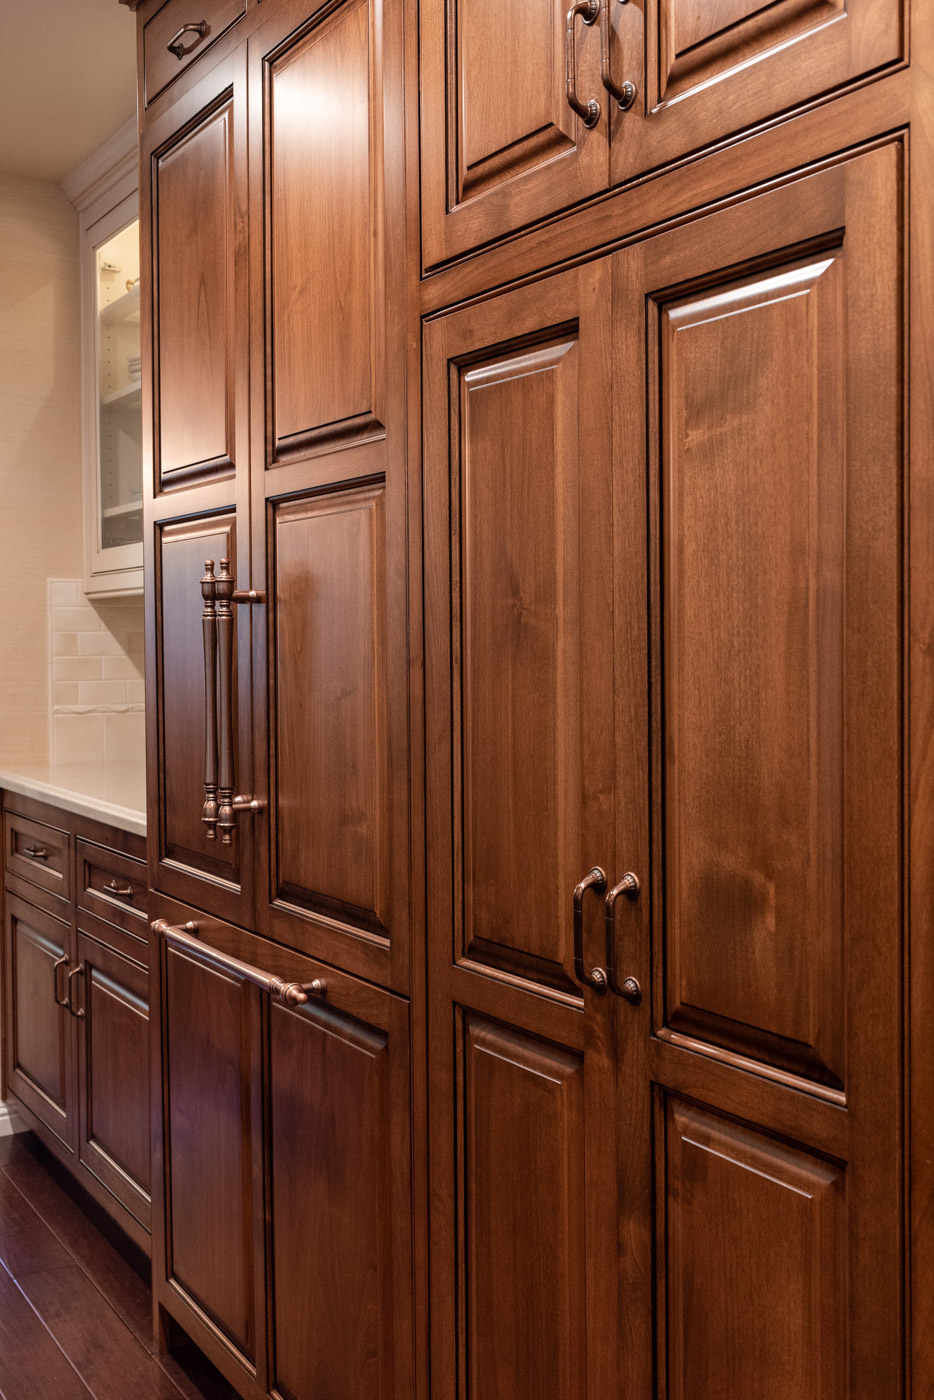 English Country custom kitchen cabinets with wood refrigerator door panels